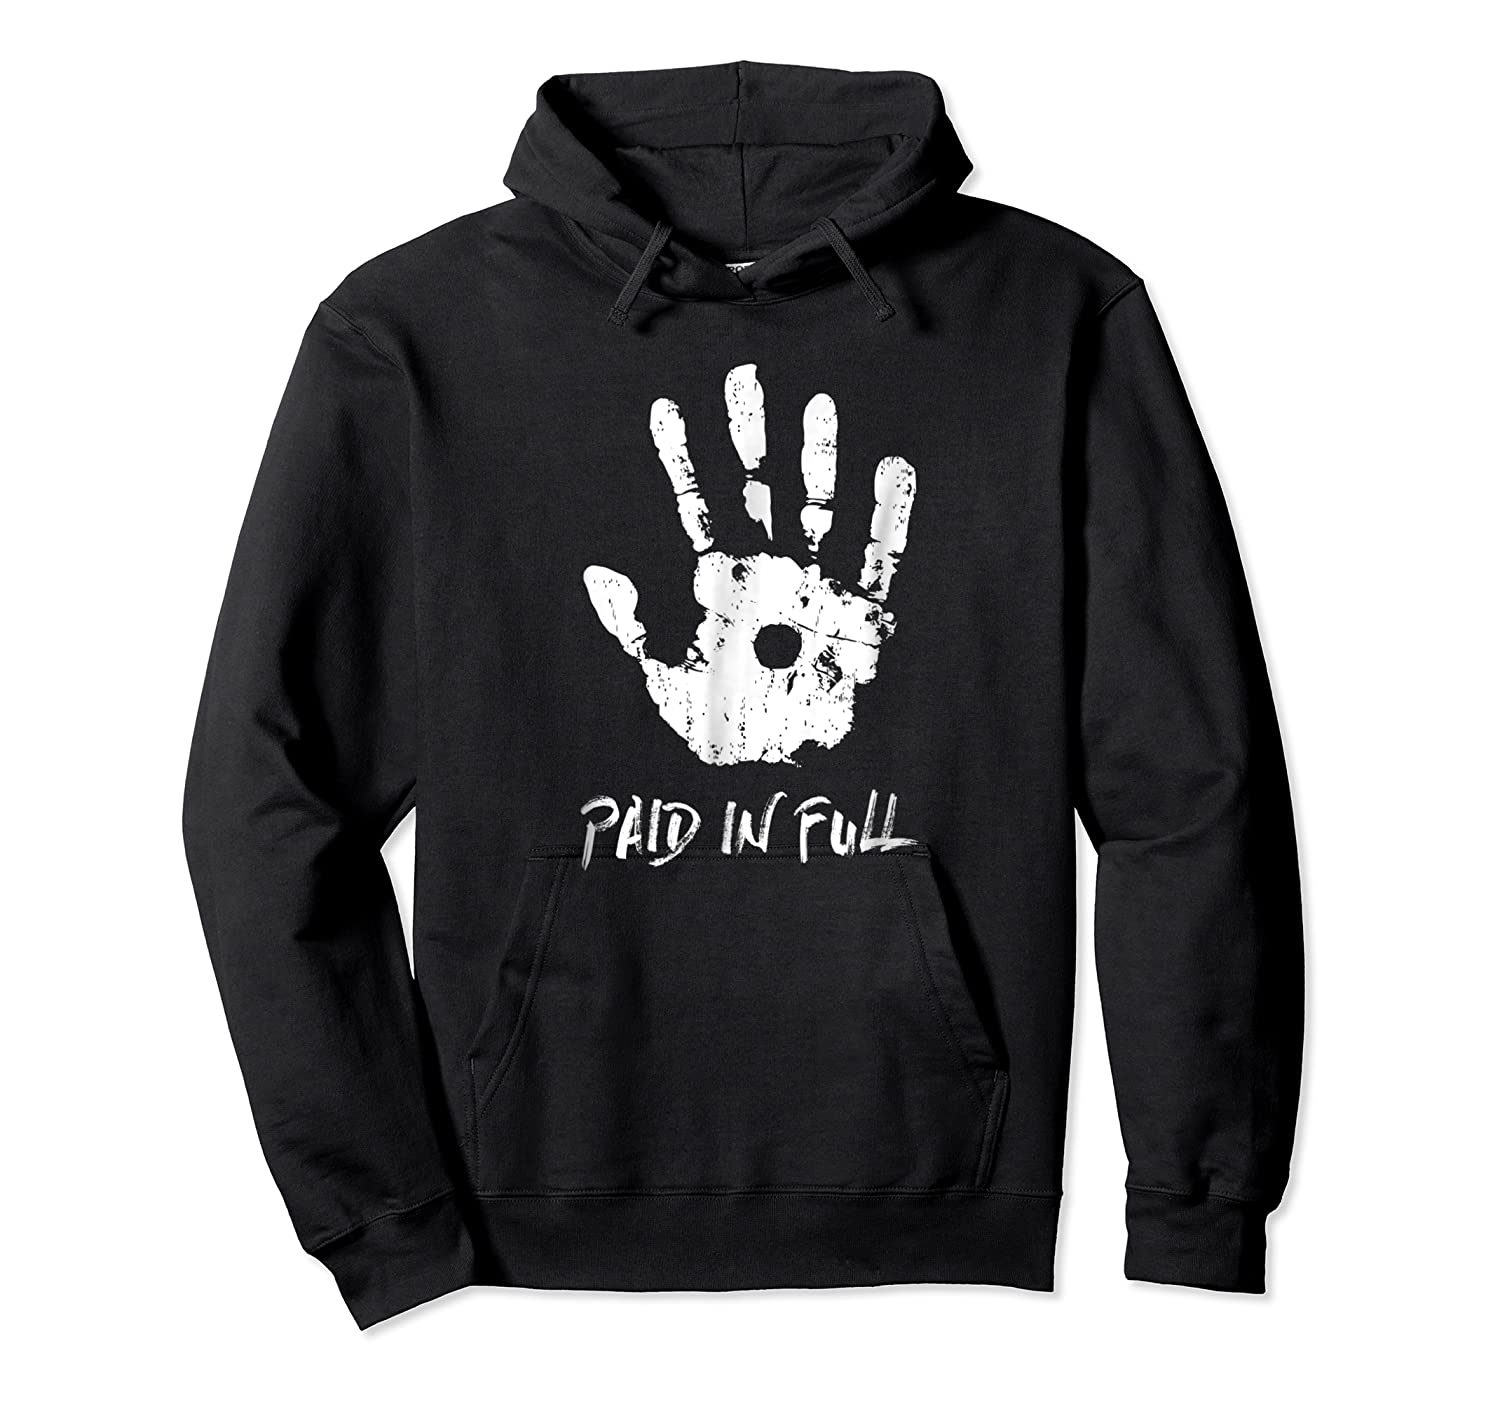 Jesus Hand Print, Paid In Full Christian Faith Shirts Unisex Pullover Hoodie